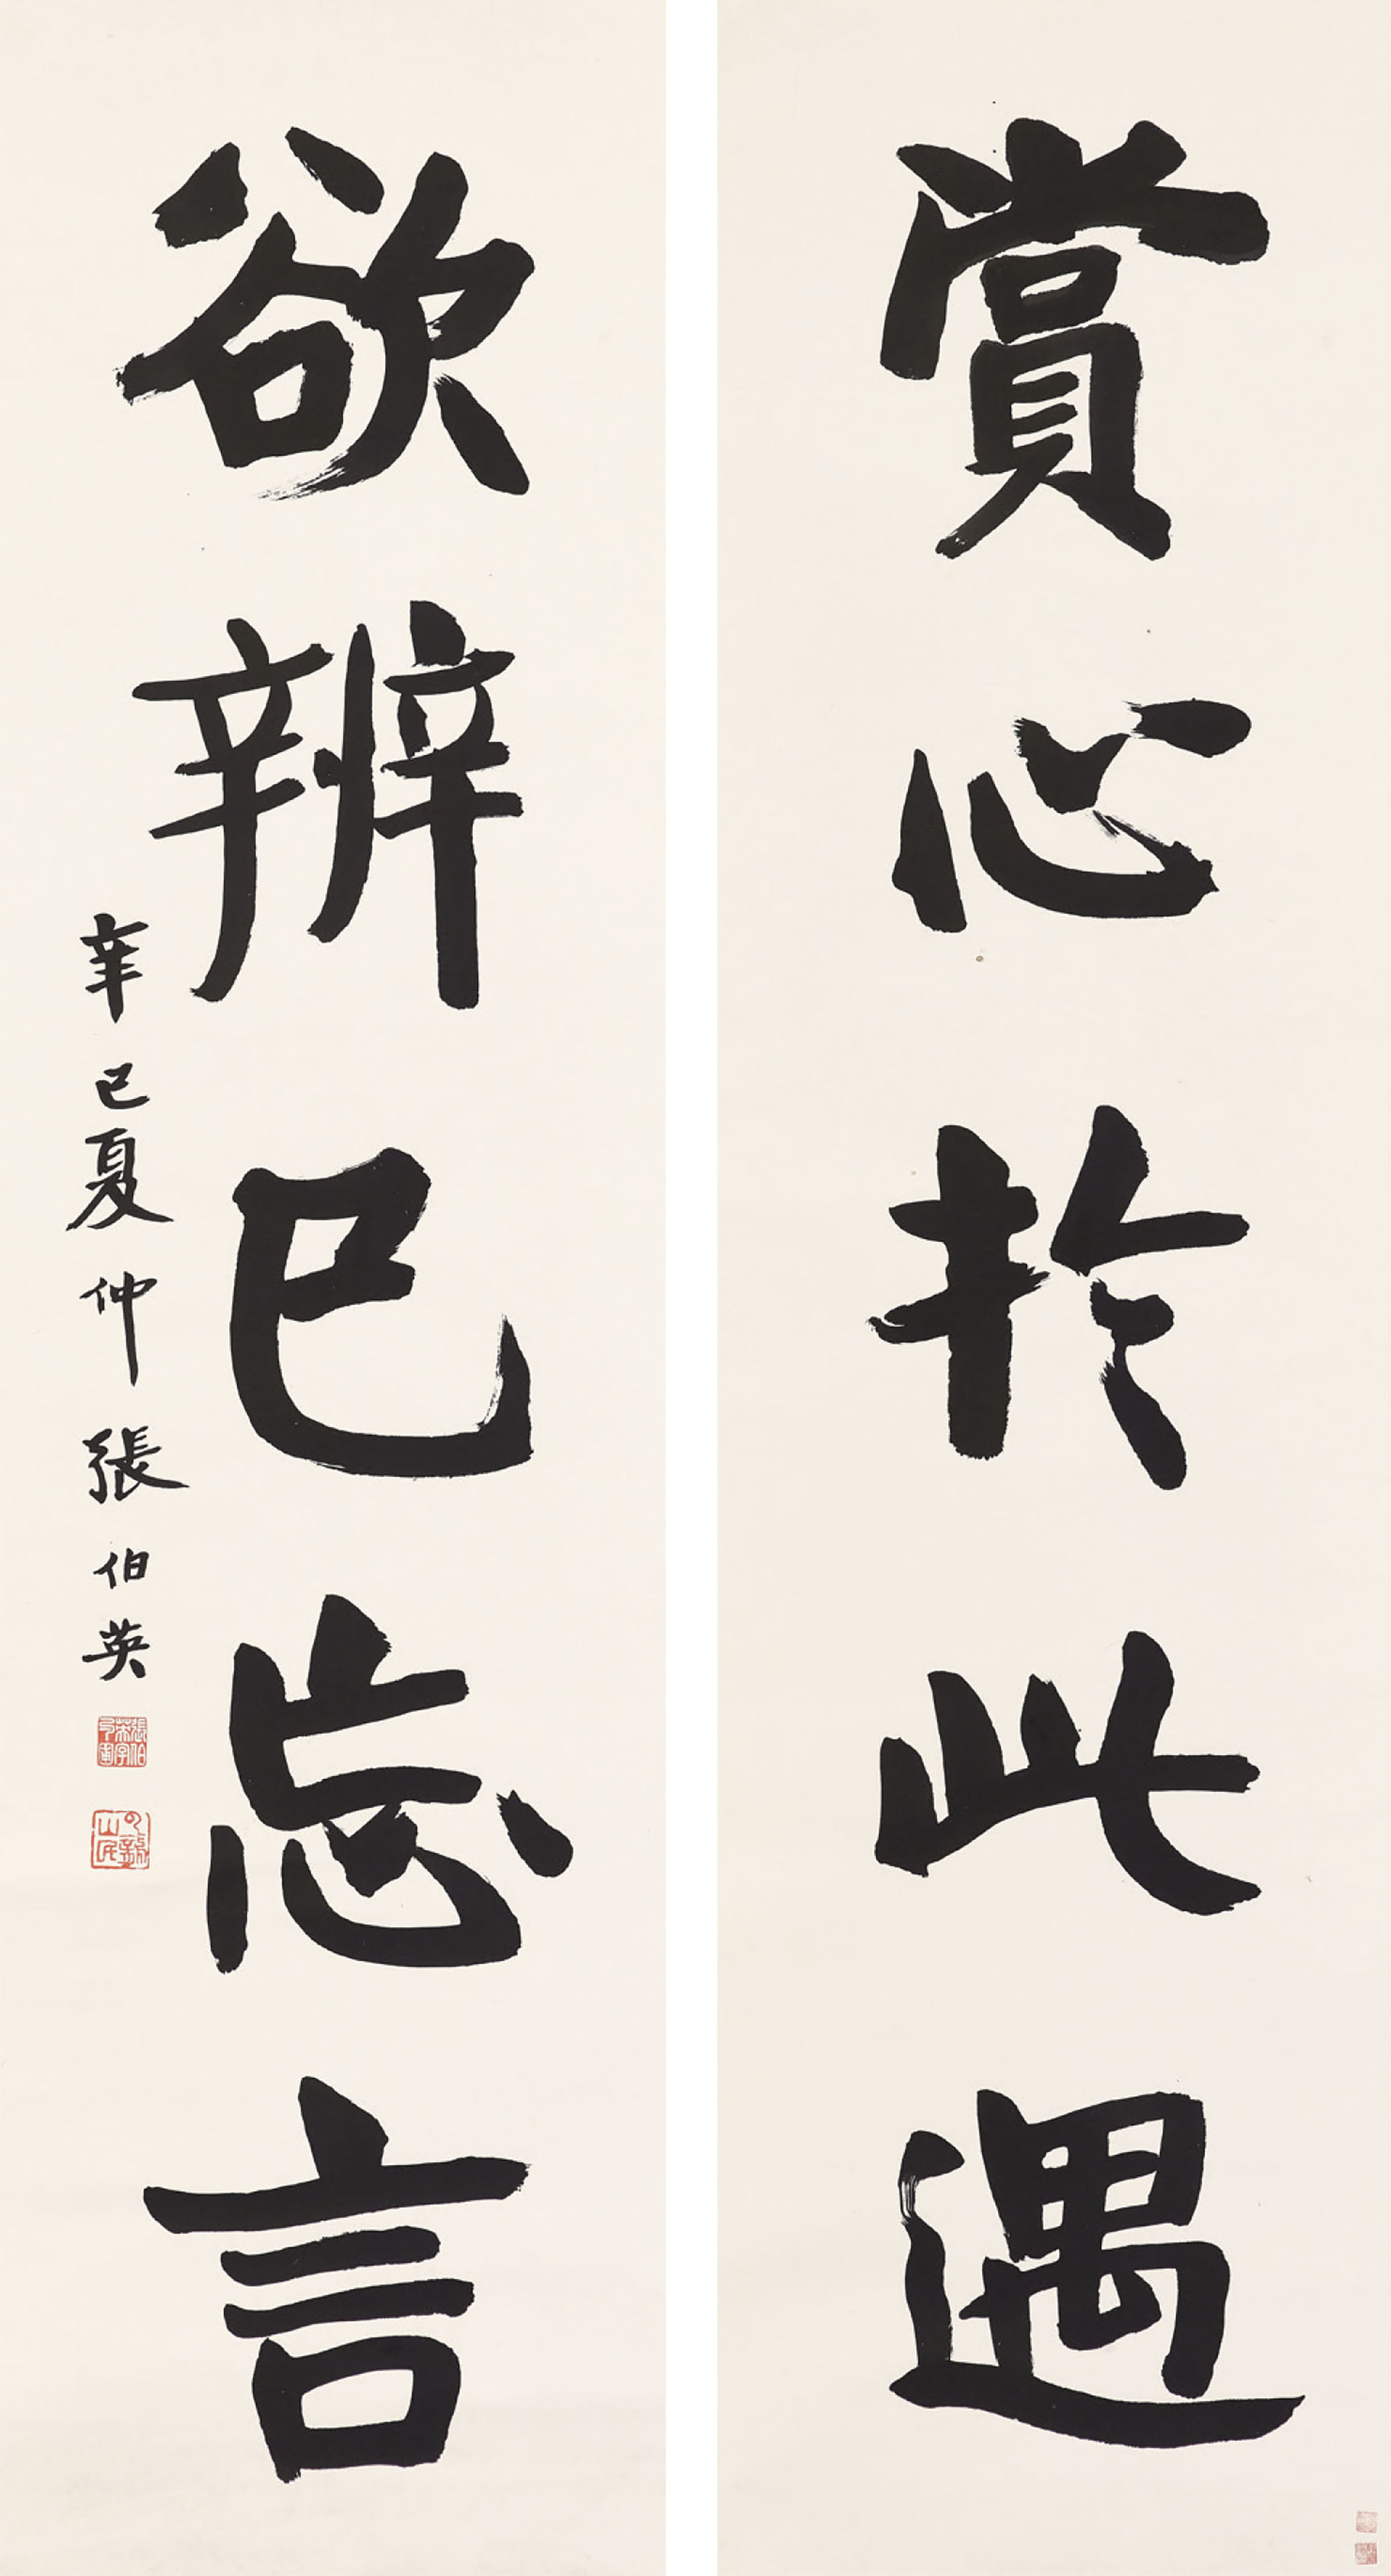 Five-character Calligraphic Couplet in Running Script